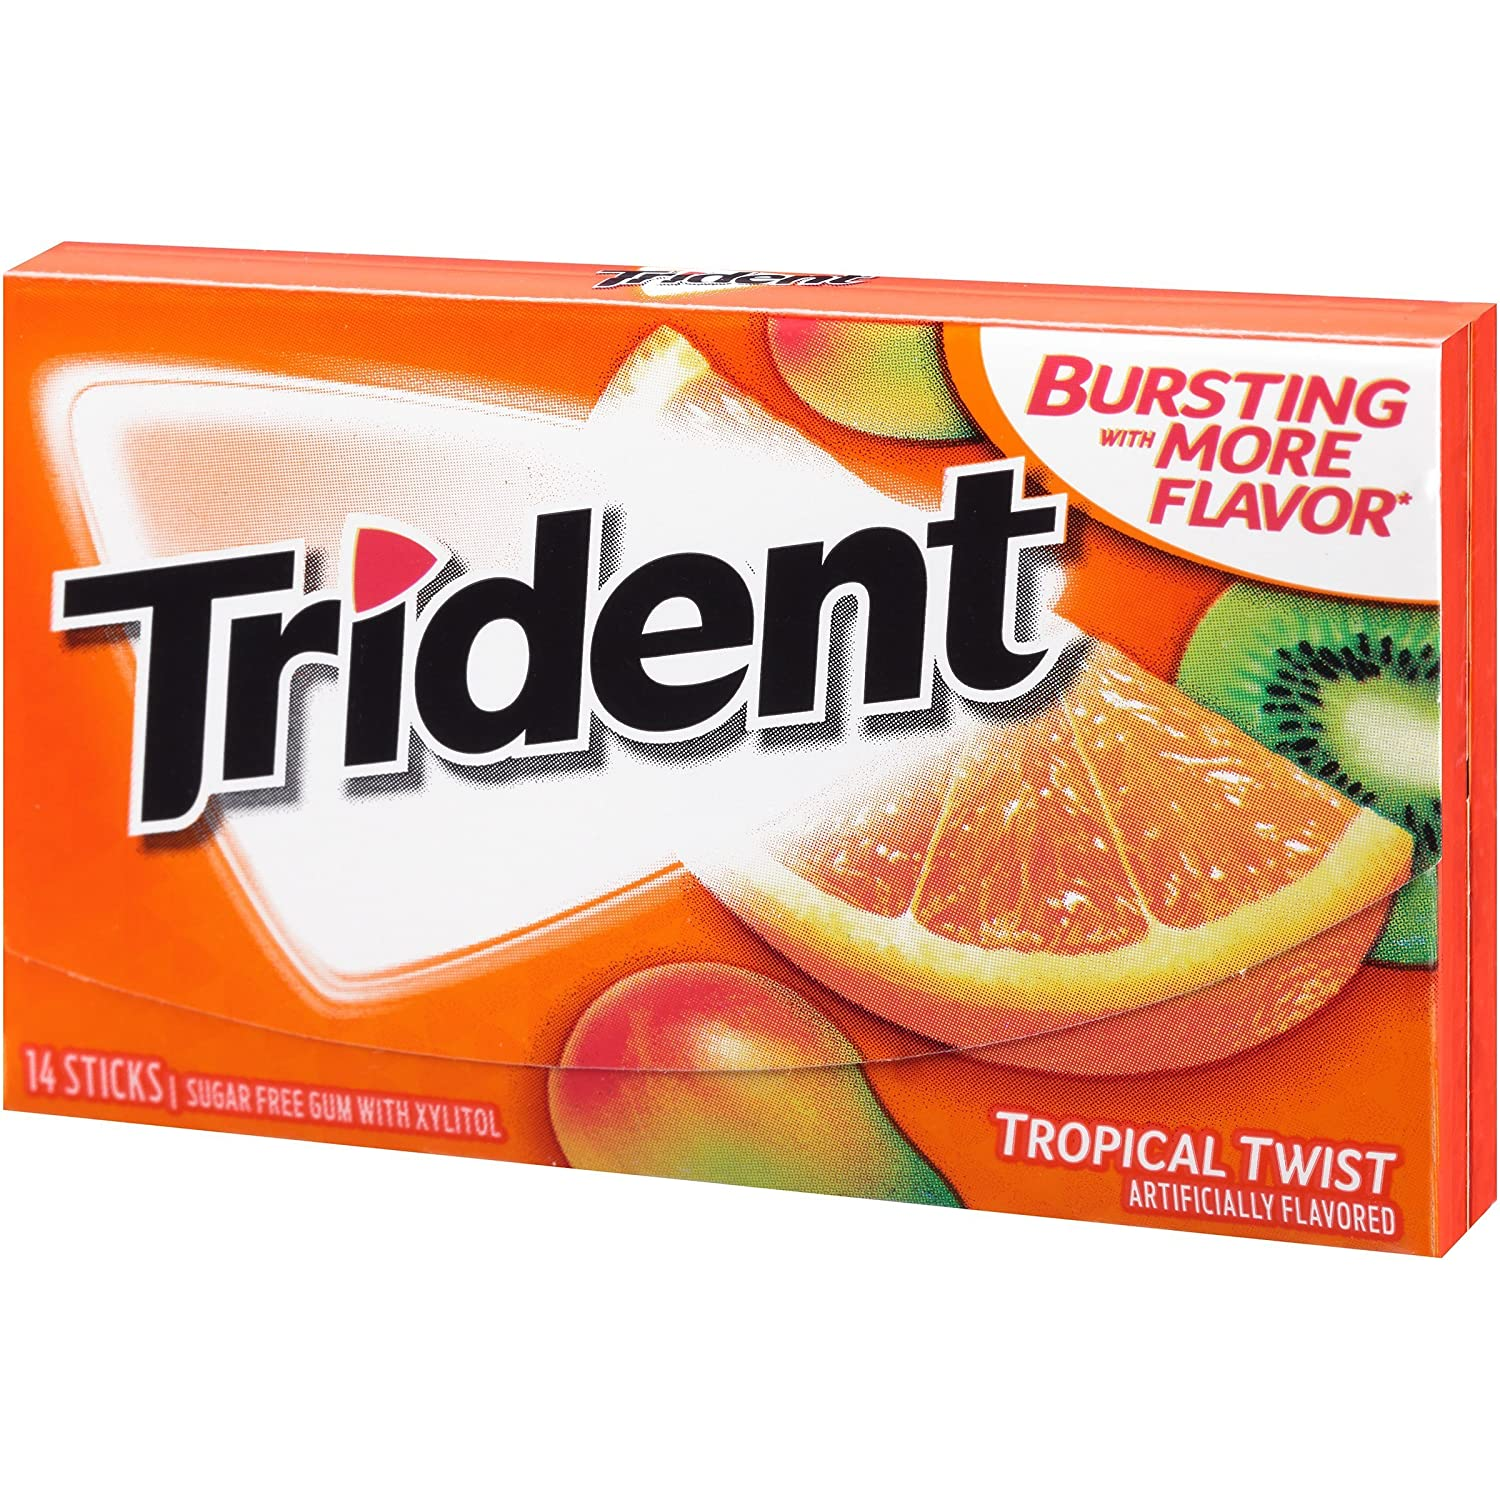 Trident Sugarless Gum Tropical Twist of Pack discount Packages 14-Count Over item handling ☆